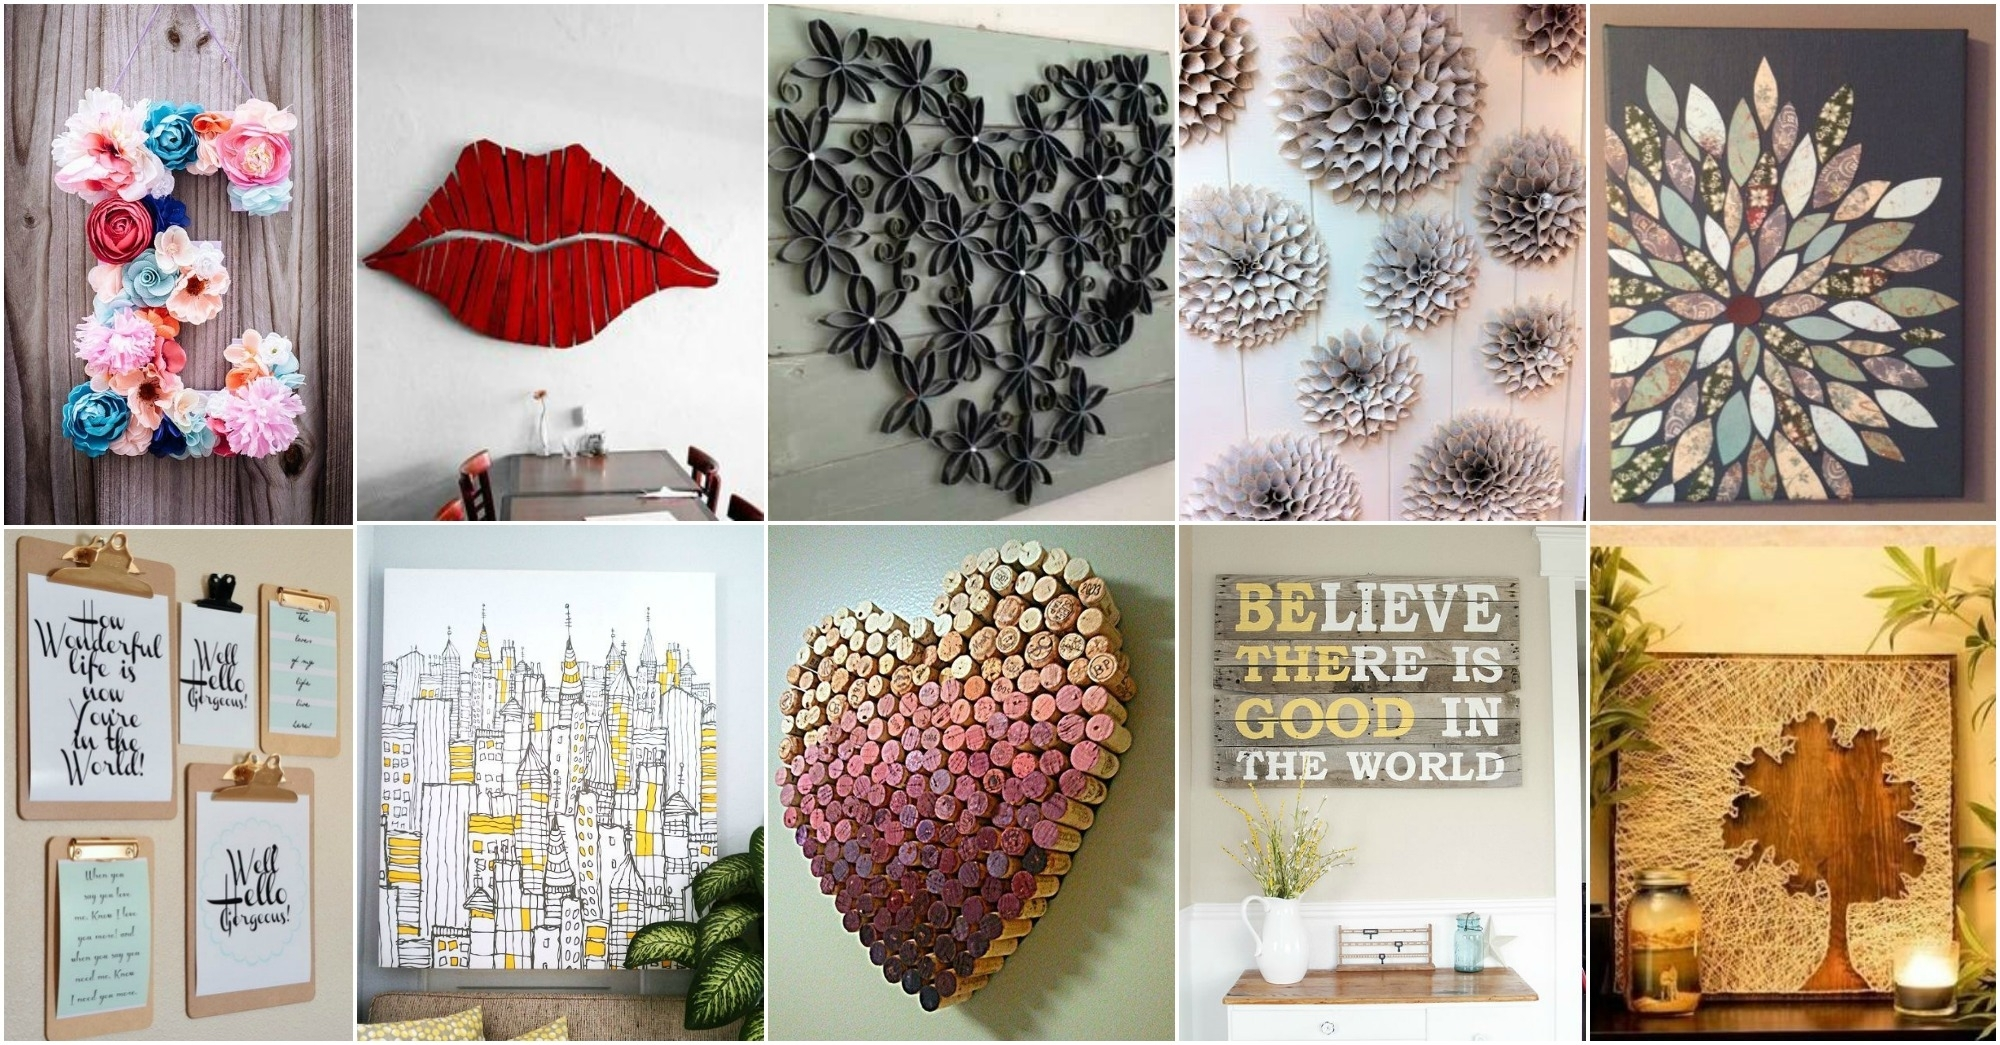 More Amazing Diy Wall Art Ideas Intended For Most Recent Wall Art Diy (View 9 of 20)